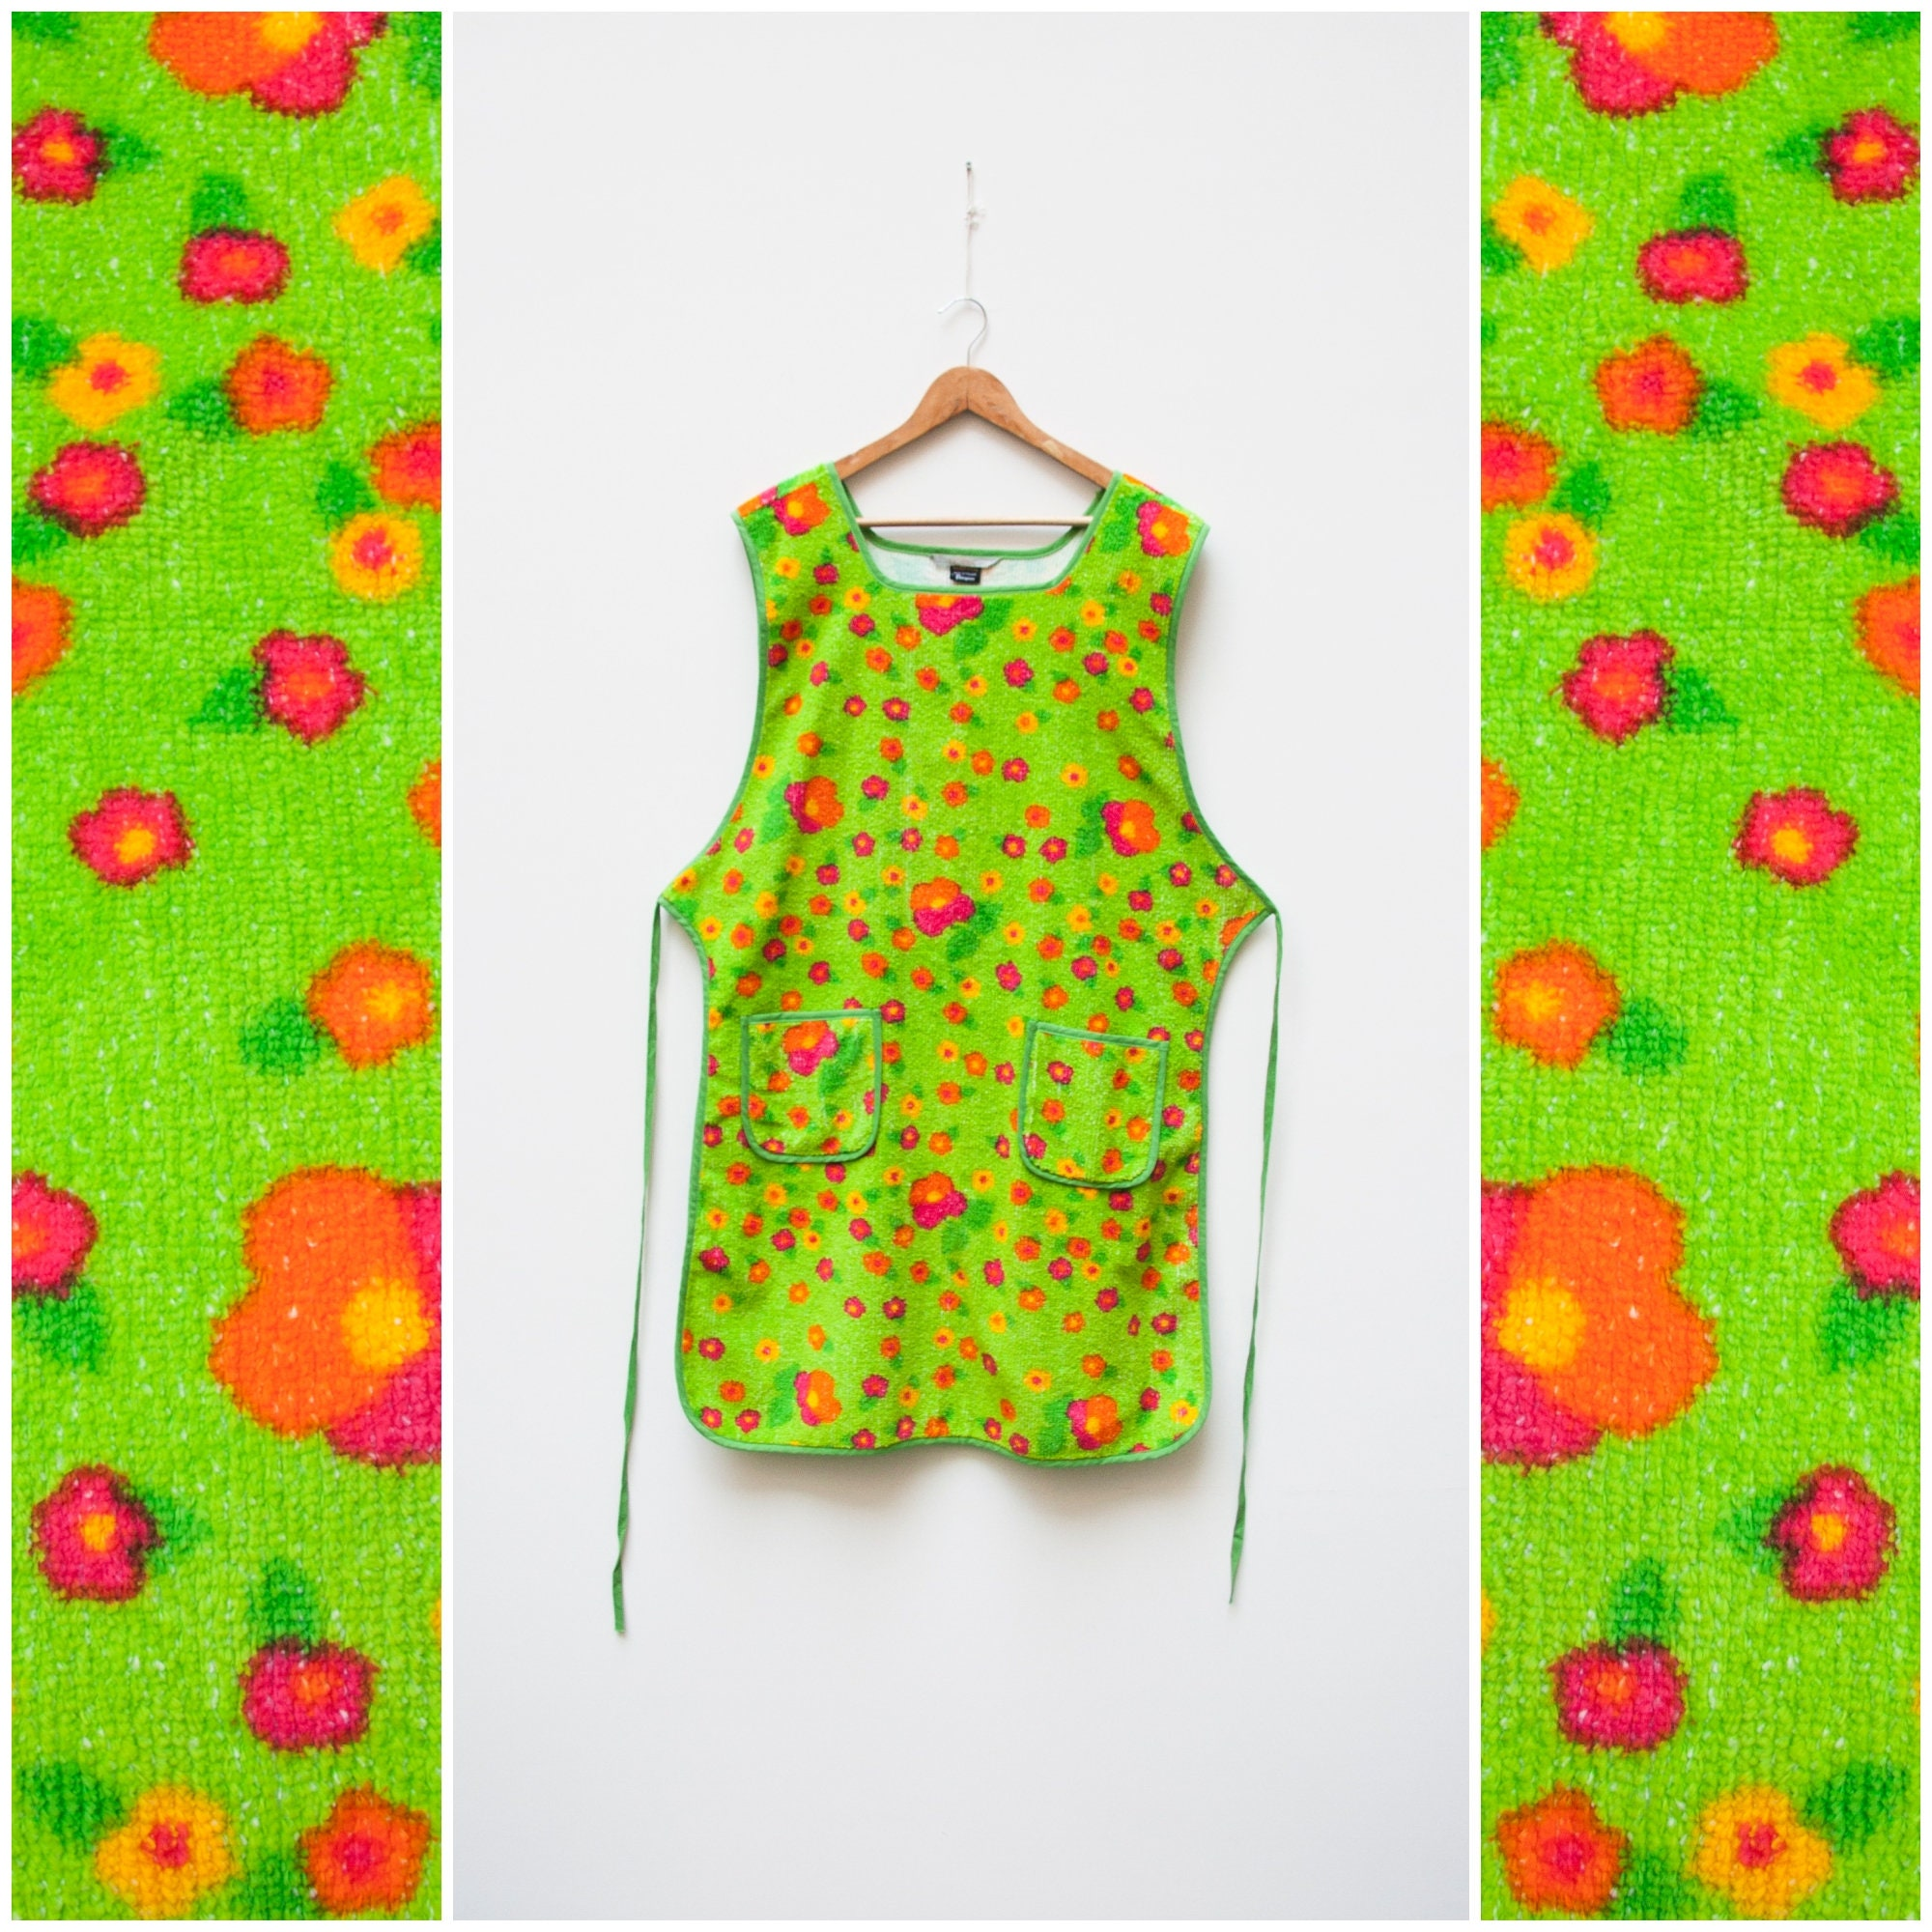 Vintage Aprons, Retro Aprons, Old Fashioned Aprons & Patterns Vintage Apron 70S House Robe Women 60S Housewife Neon Floral Print Green Overalls Homewear Retro Dress S M $58.02 AT vintagedancer.com